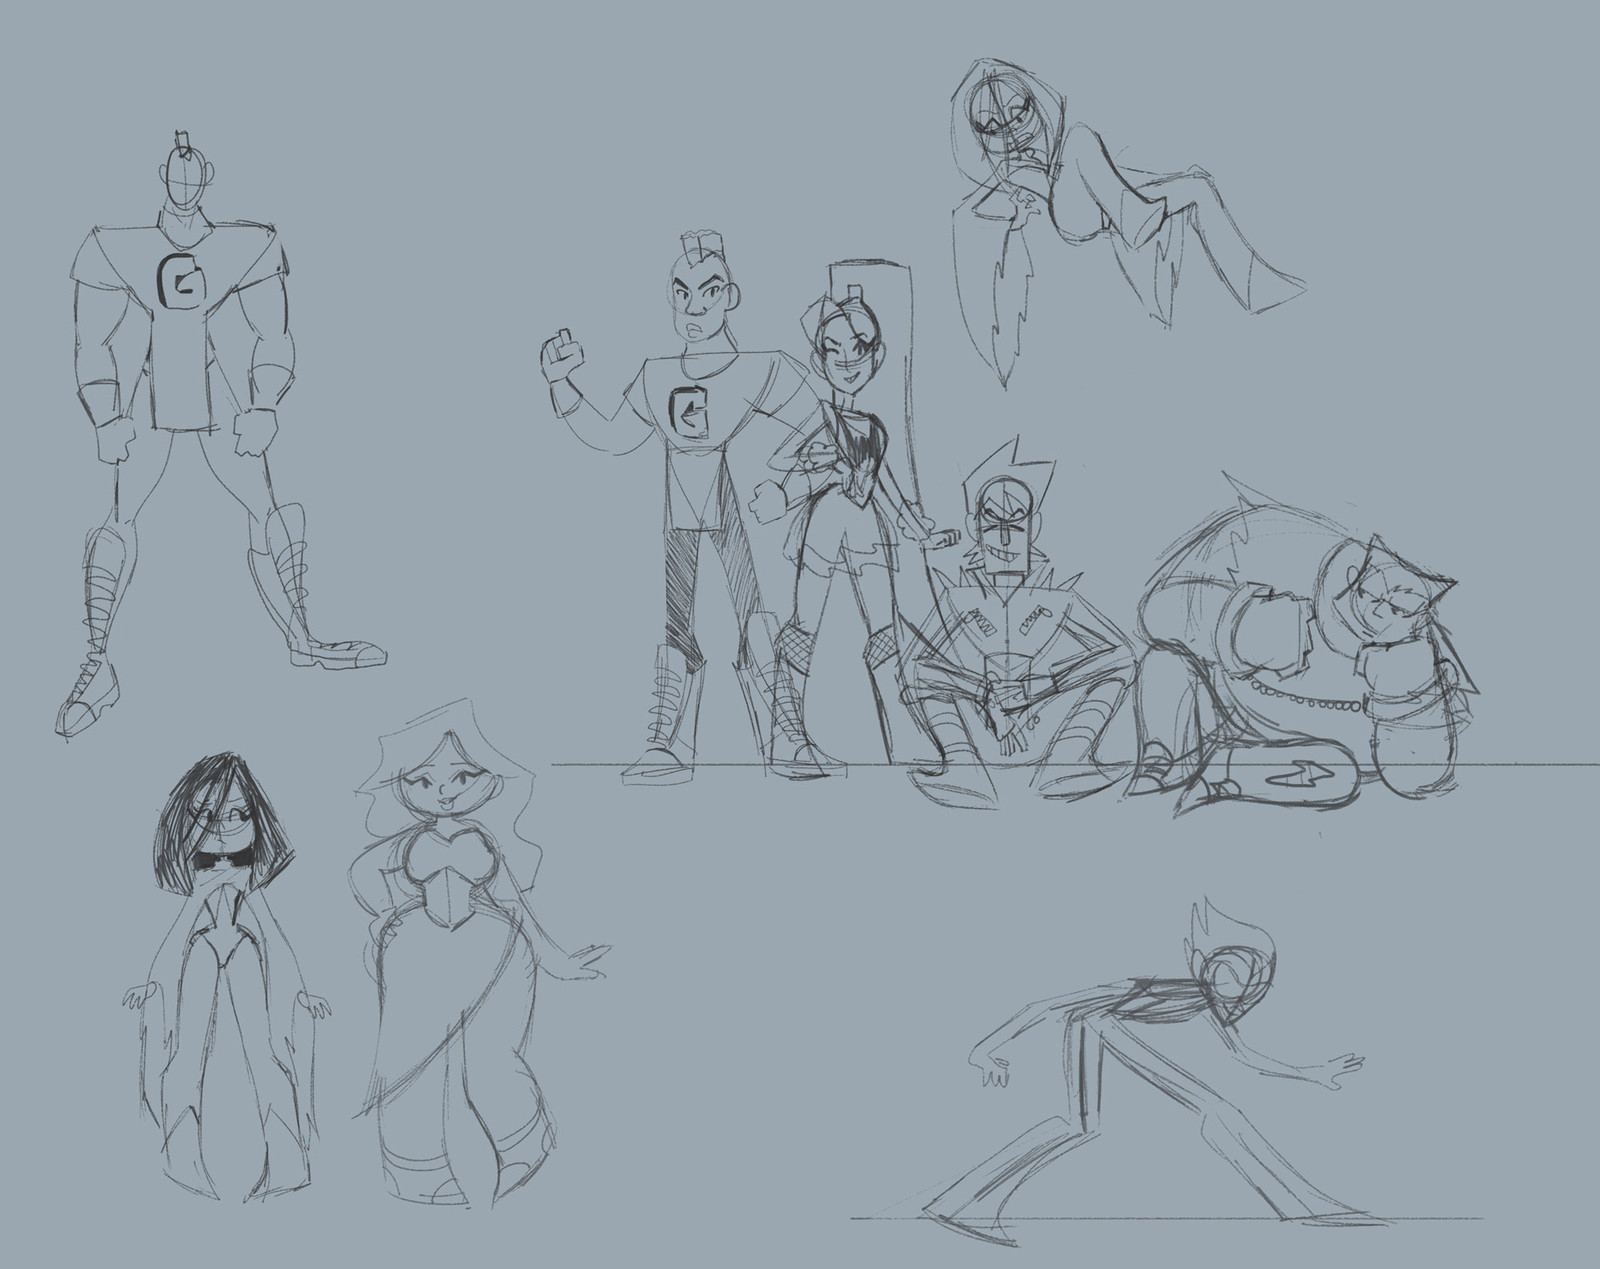 Sketch phase of the group.